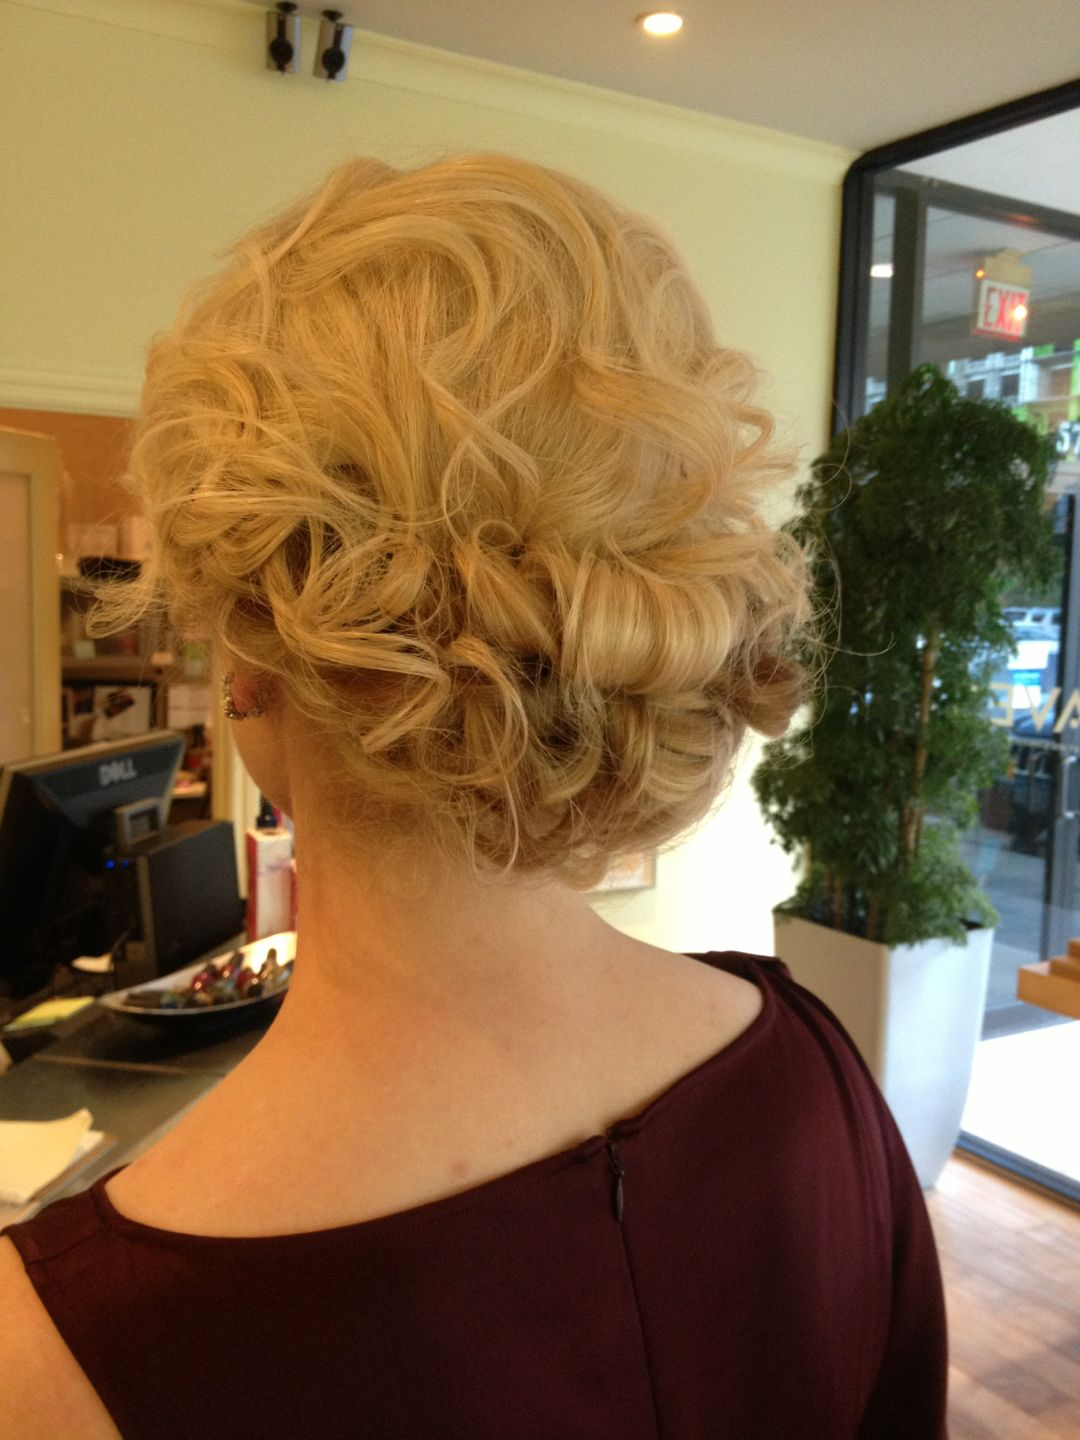 Curly romantic updo formal hair style wedding bride bridal up